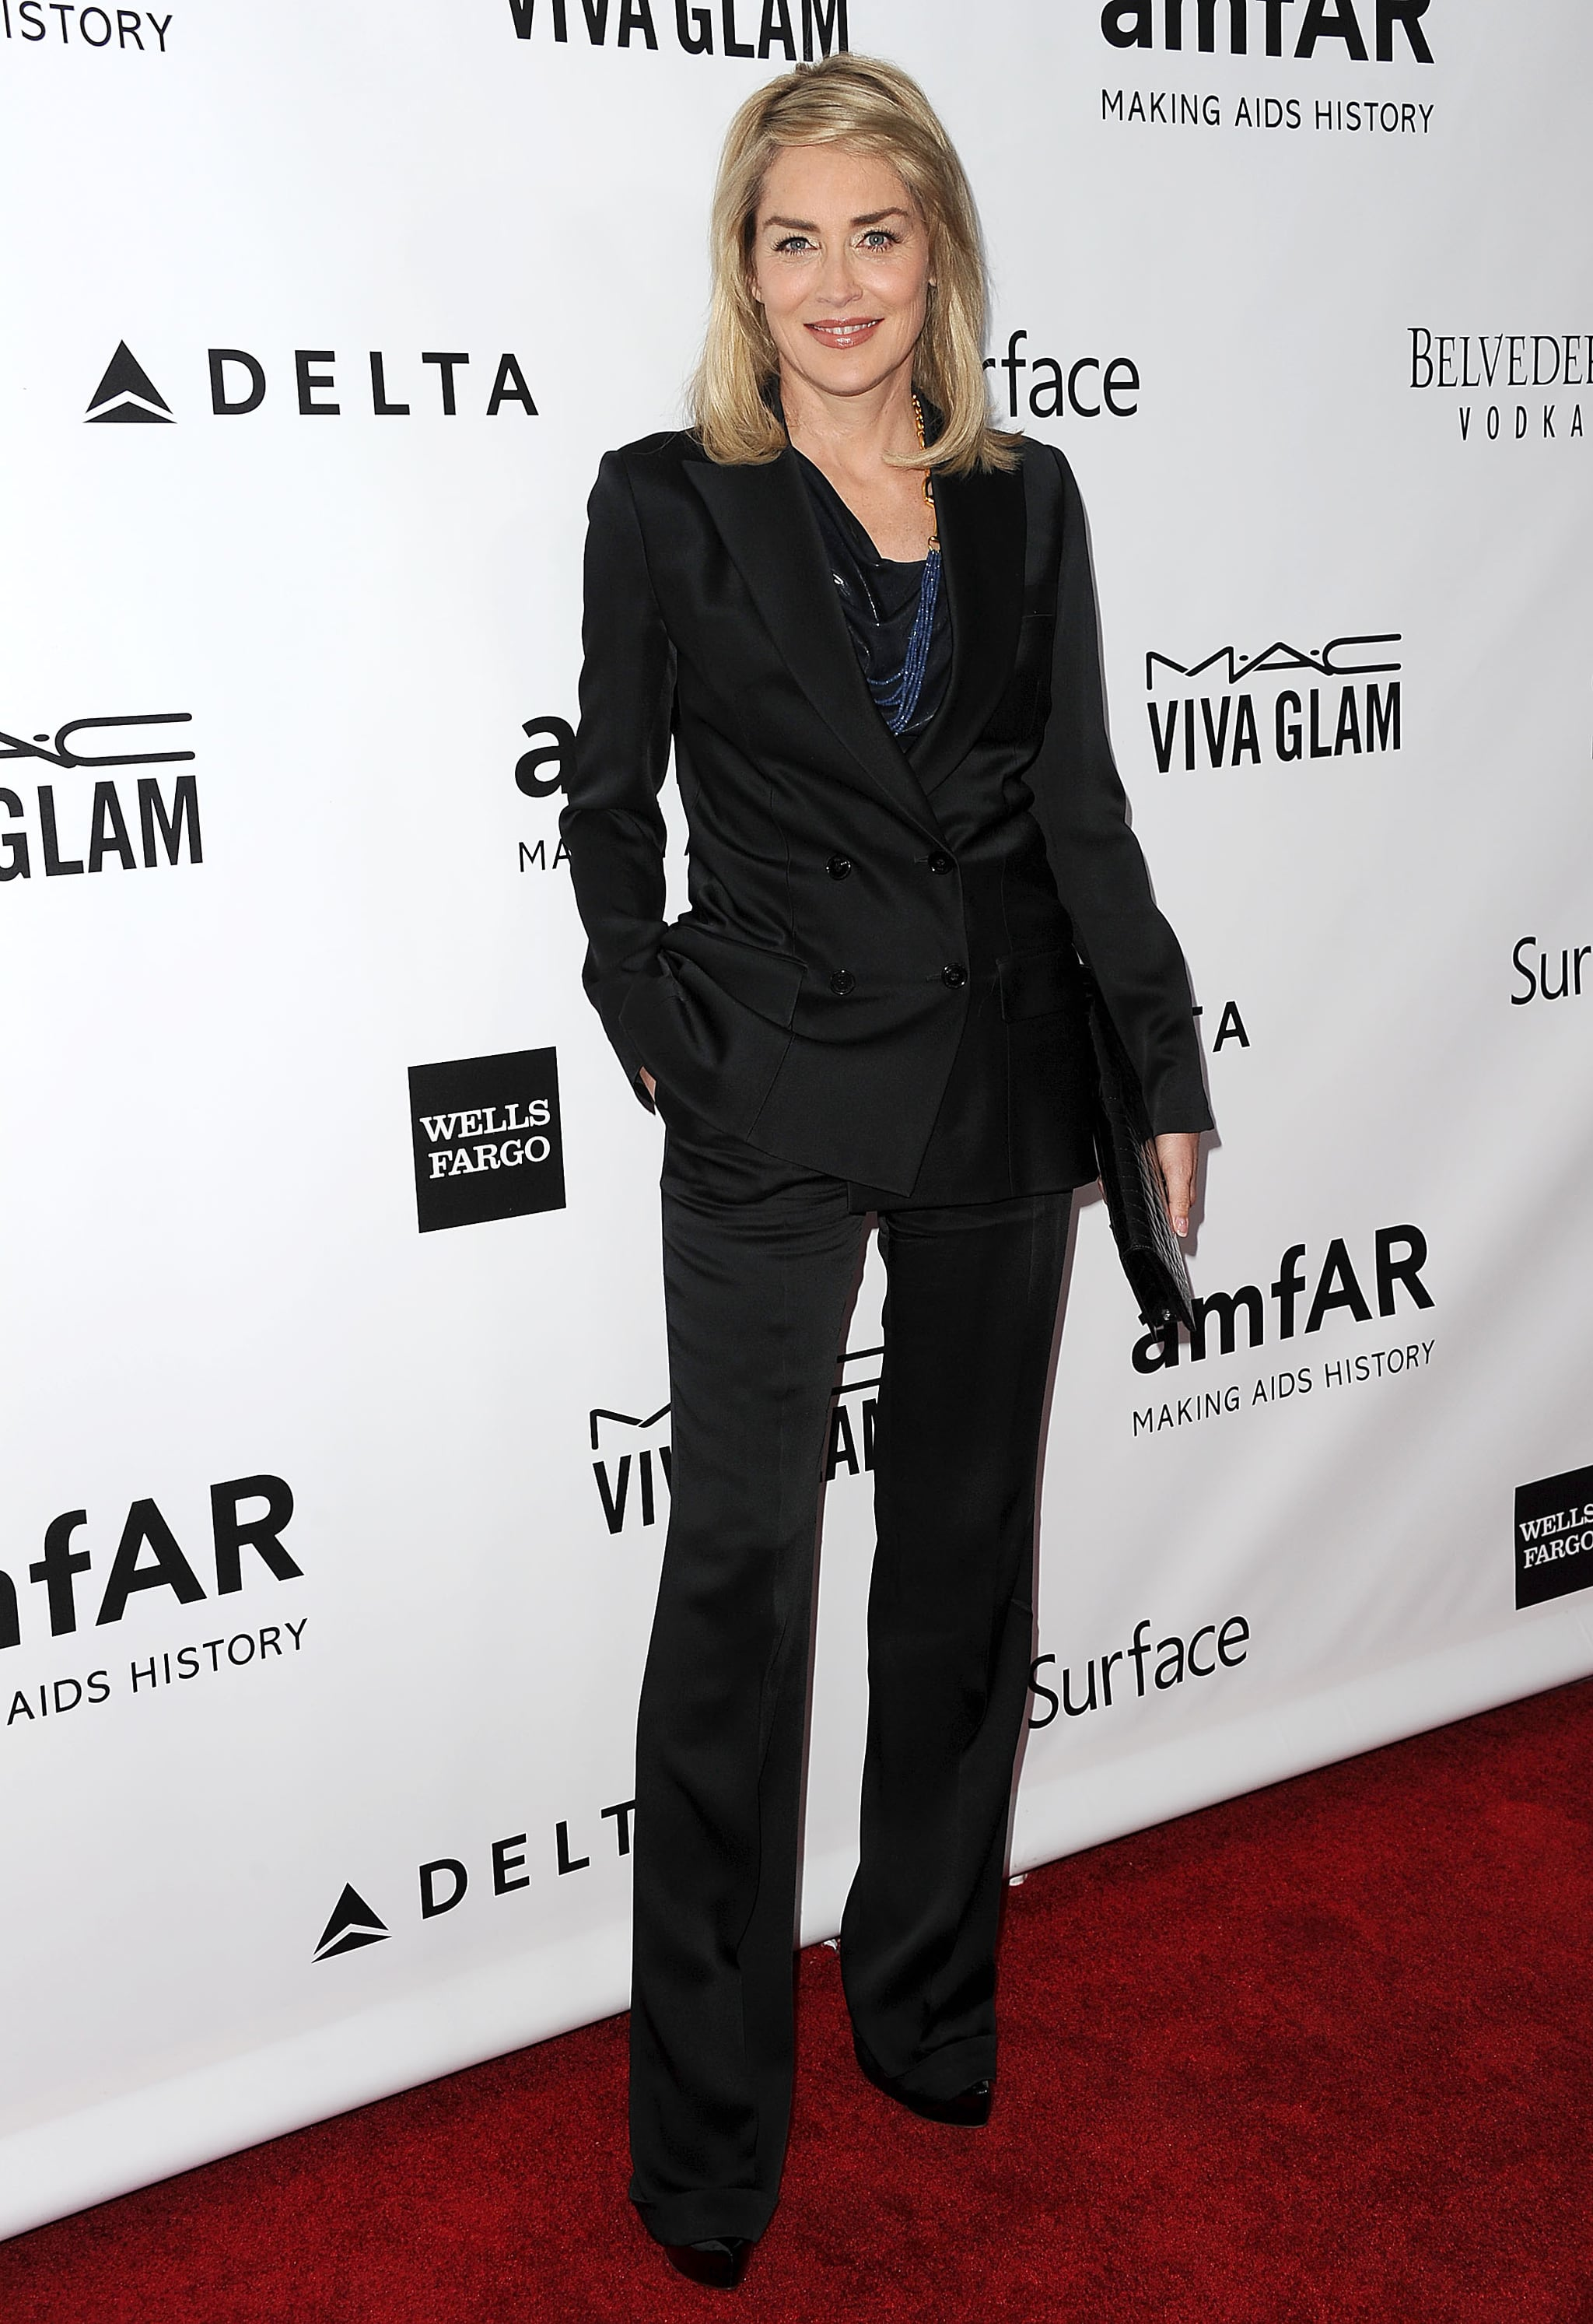 Sharon Stone wore a black suit.